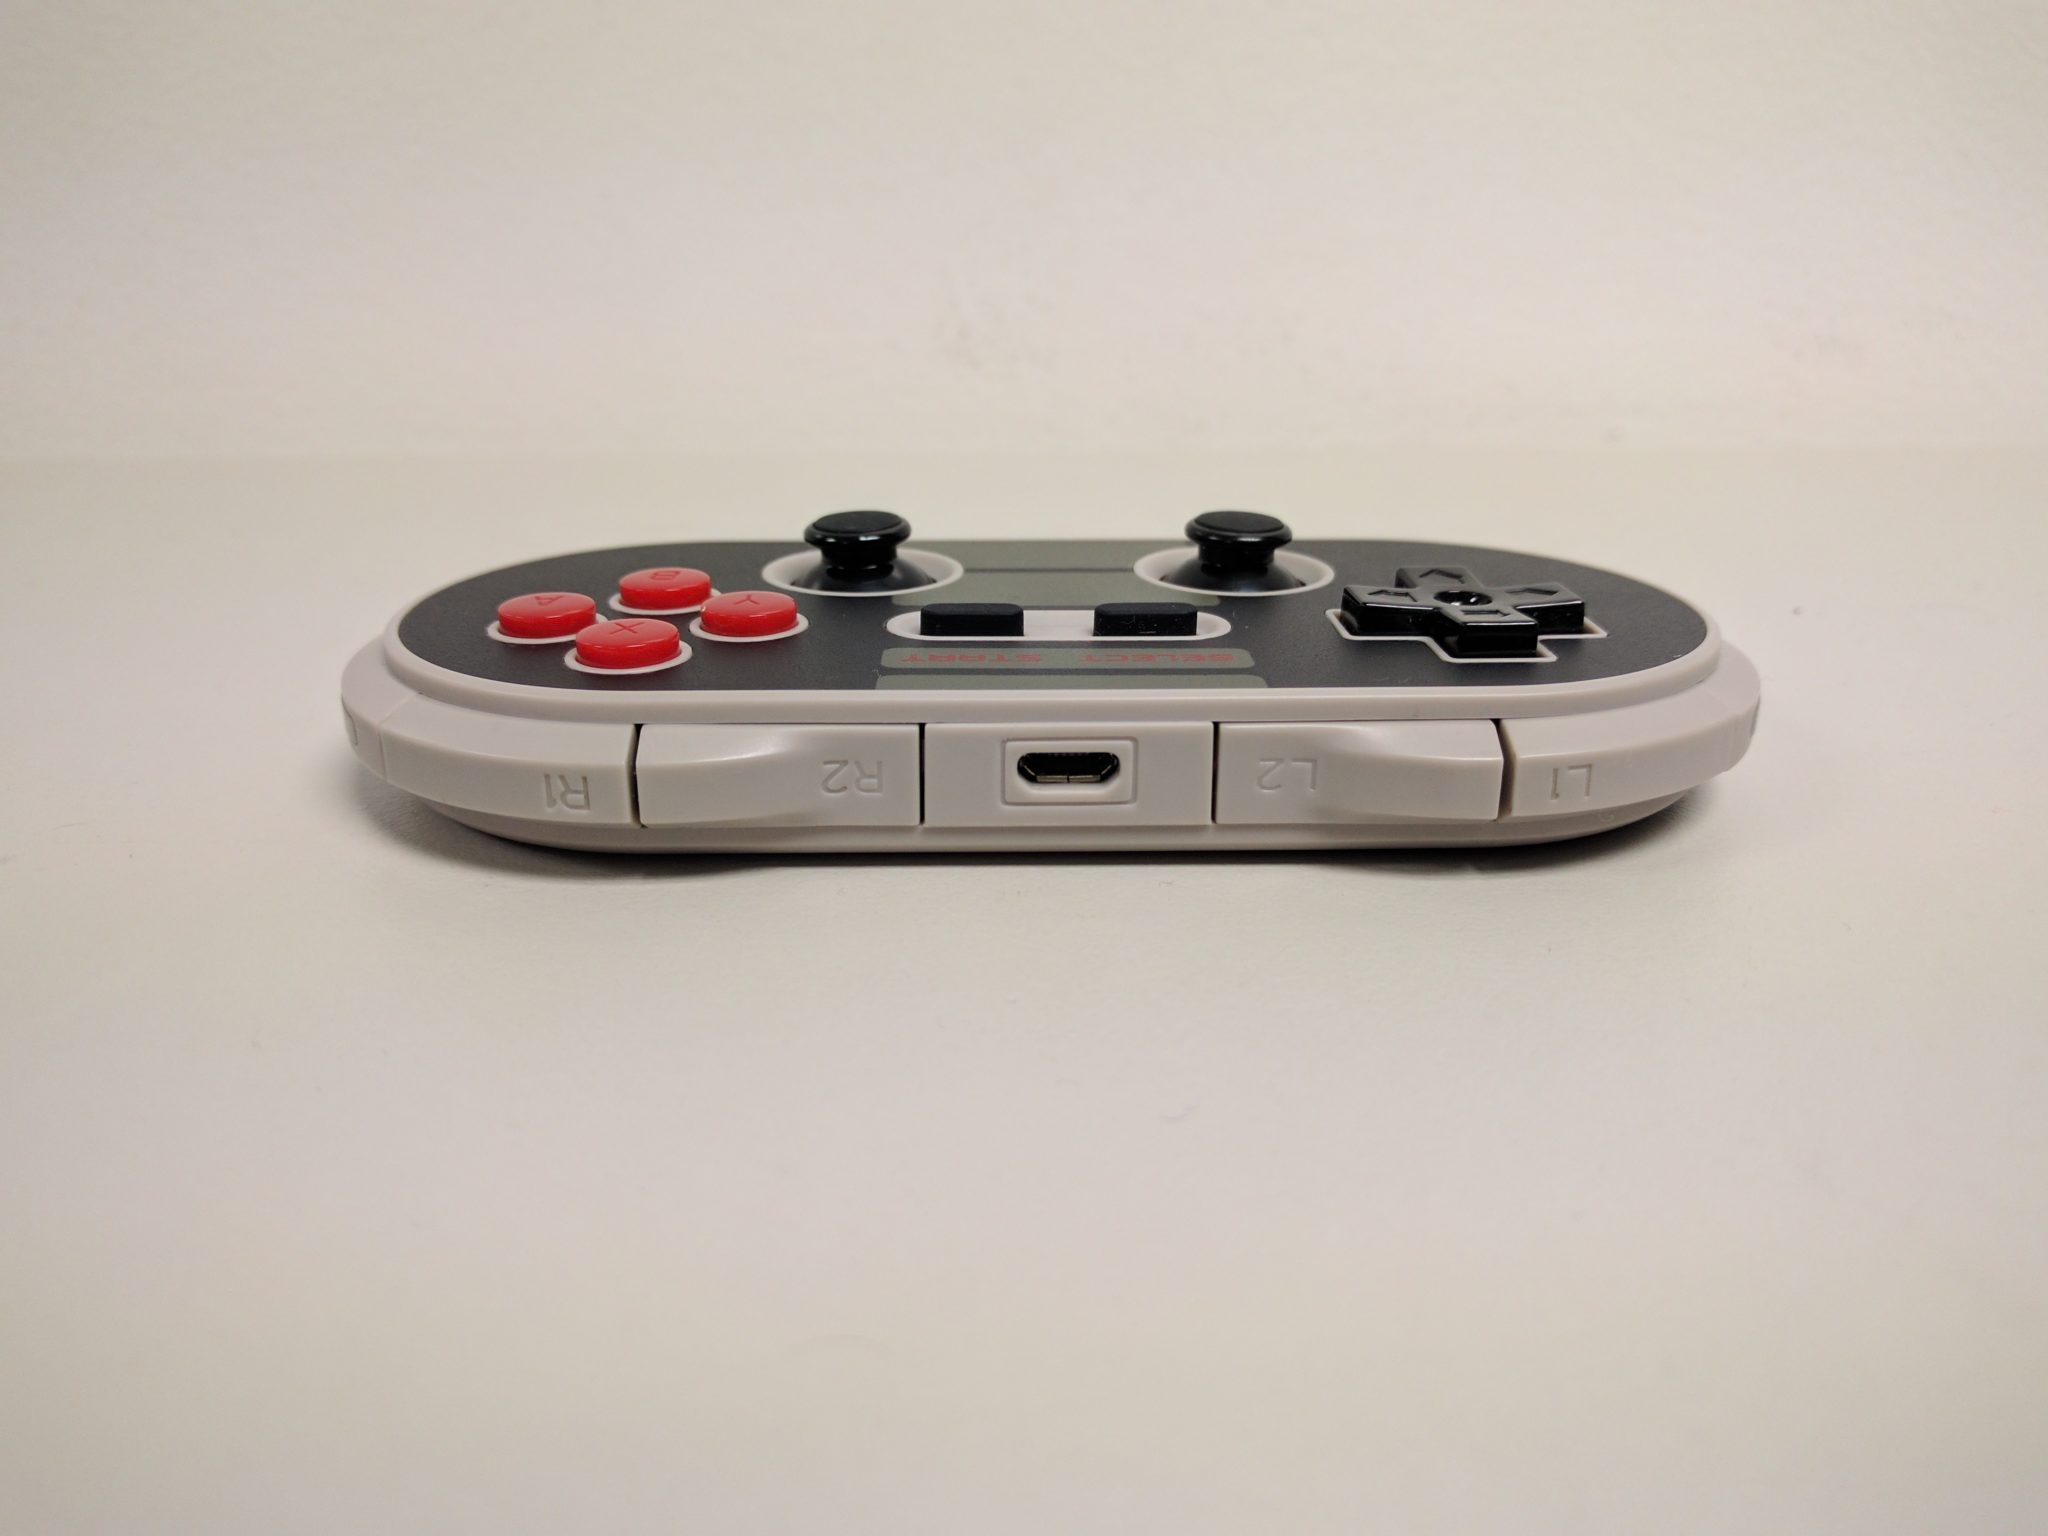 8bitdo Nes30 Pro Game Controller On The Nintendo Switch Review Retro Bluetooth For Ios Android Pc Mac Pros Shoulder Button Placement Leaves A Lot To Be Desired